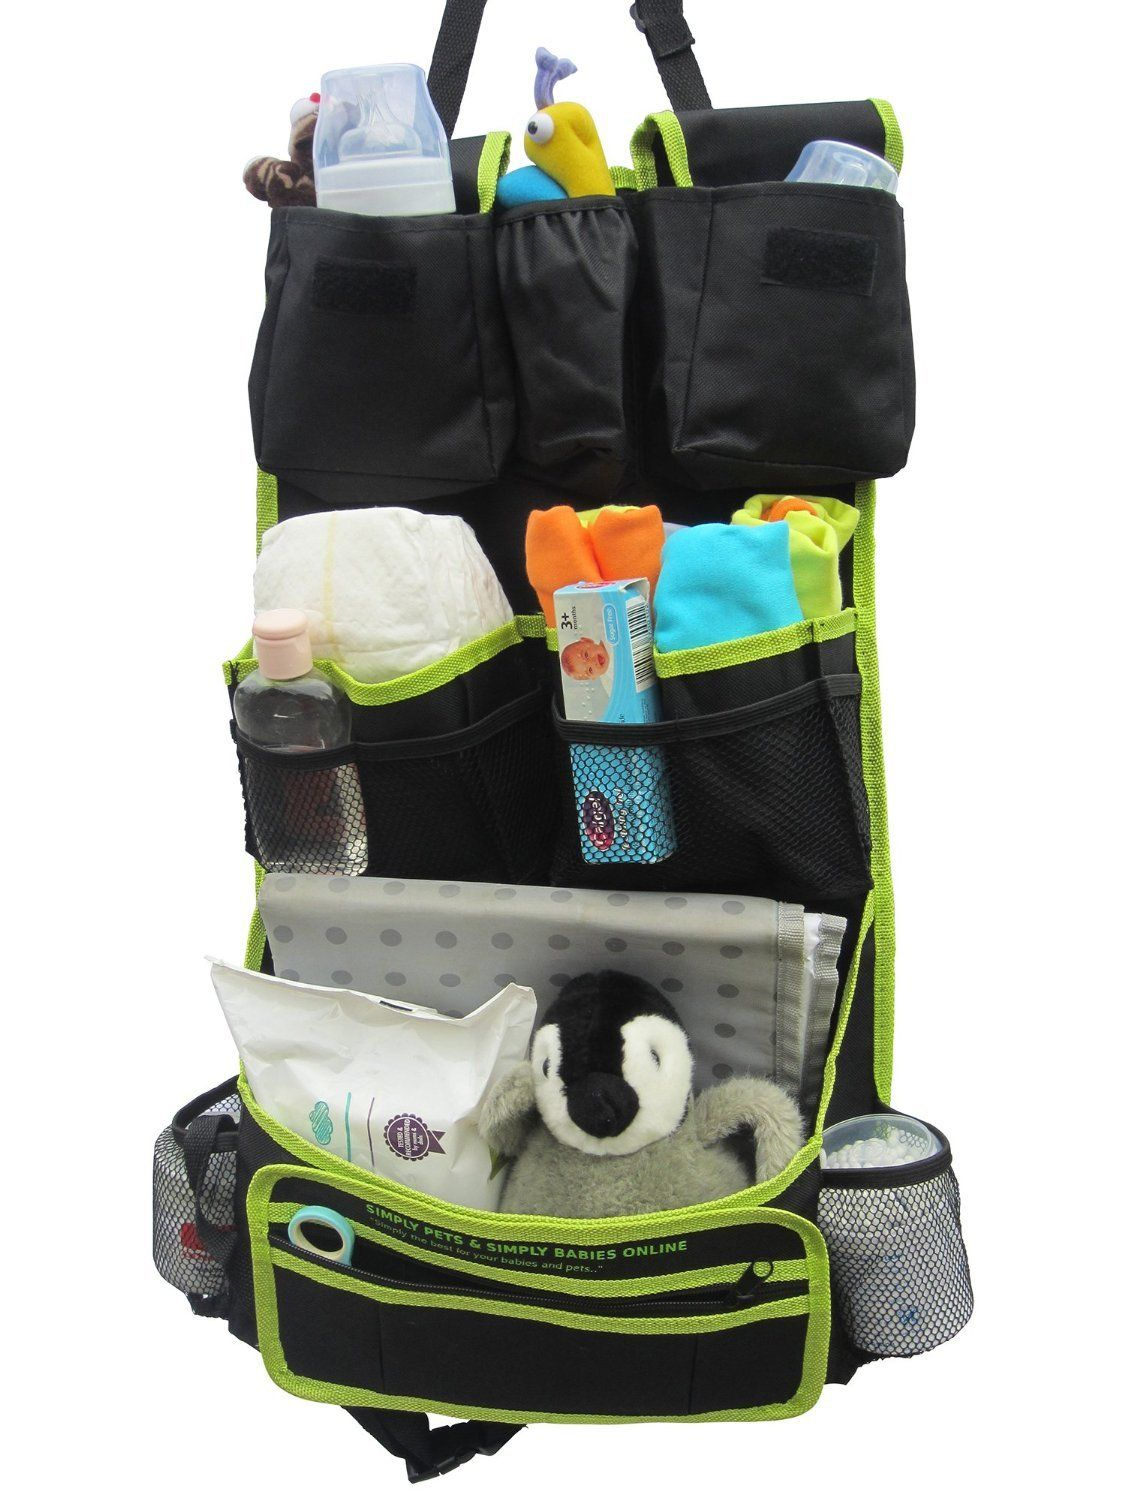 Back Seat Organizer ALL 15 Pockets In Various Sizes